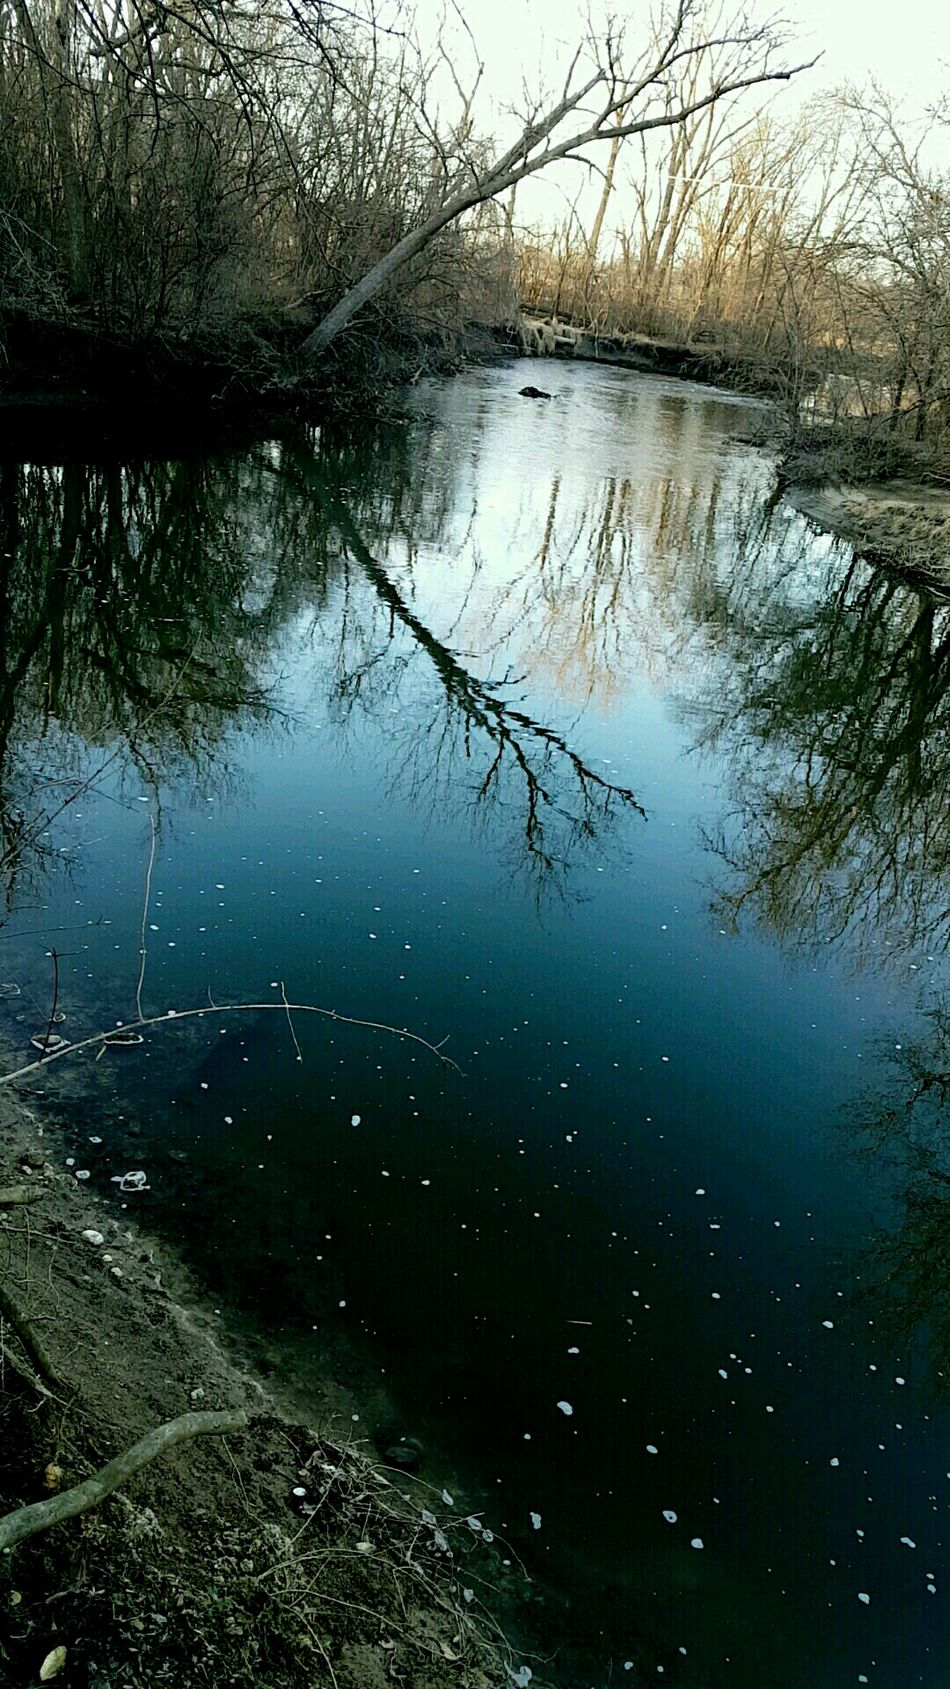 February 14.17 Tree Reflection Water No People Nature Branch Reflection Lake Backgrounds Outdoors Sky Close-up Day Creek Creekside Creekside Trail Freshness Woods Eldridge Eldridge Park At Dusk Rocks Beauty Beauty In Nature Tranquility Wilderness Scenics